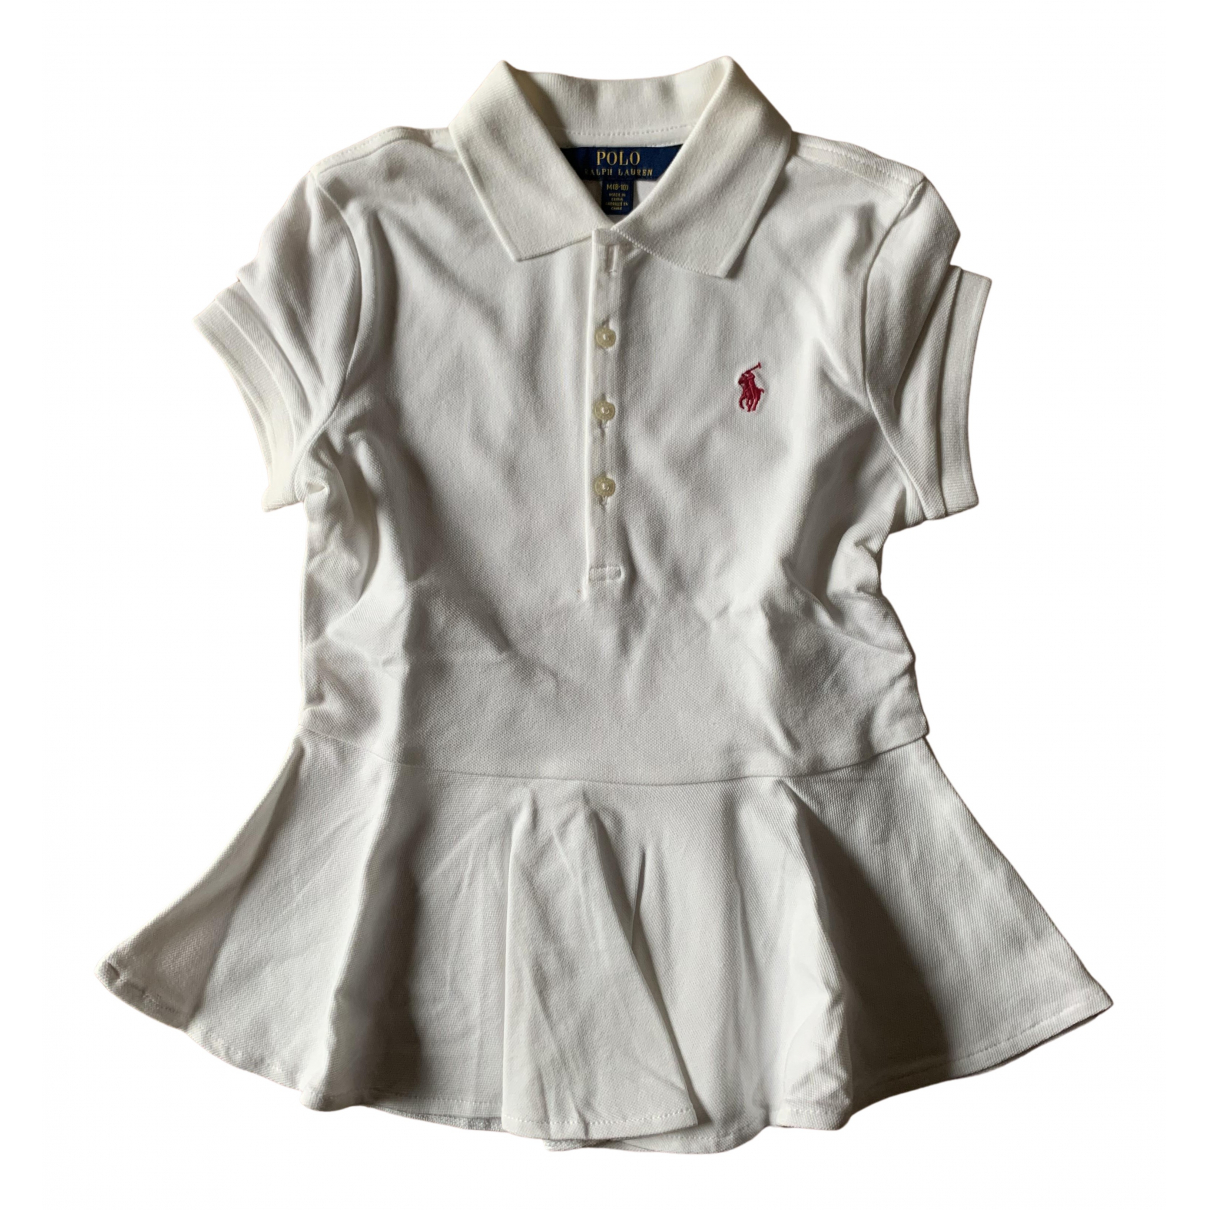 Polo Ralph Lauren N White Cotton  top for Kids 8 years - up to 128cm FR